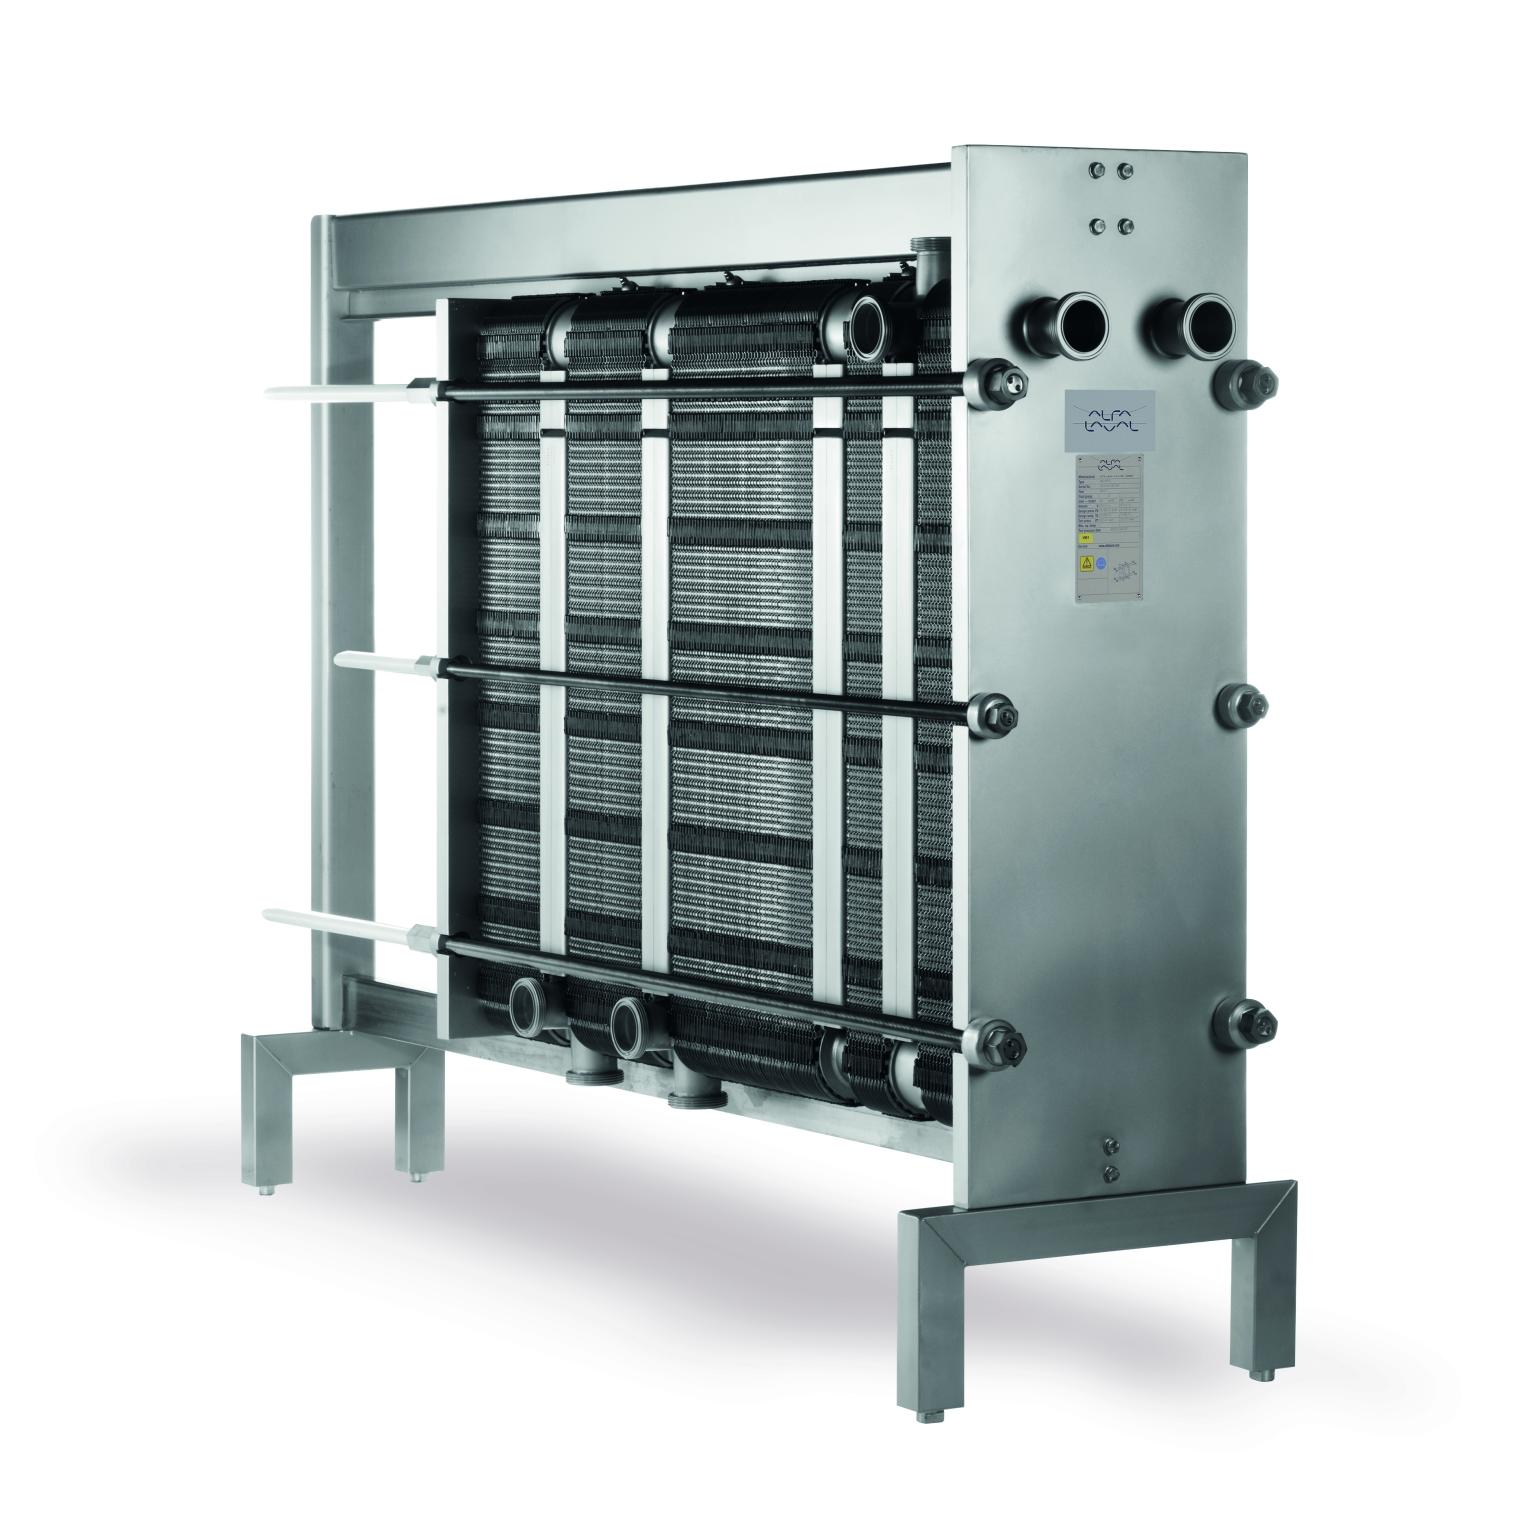 An Alfa Laval FrontLine gasketed plate heat exchanger